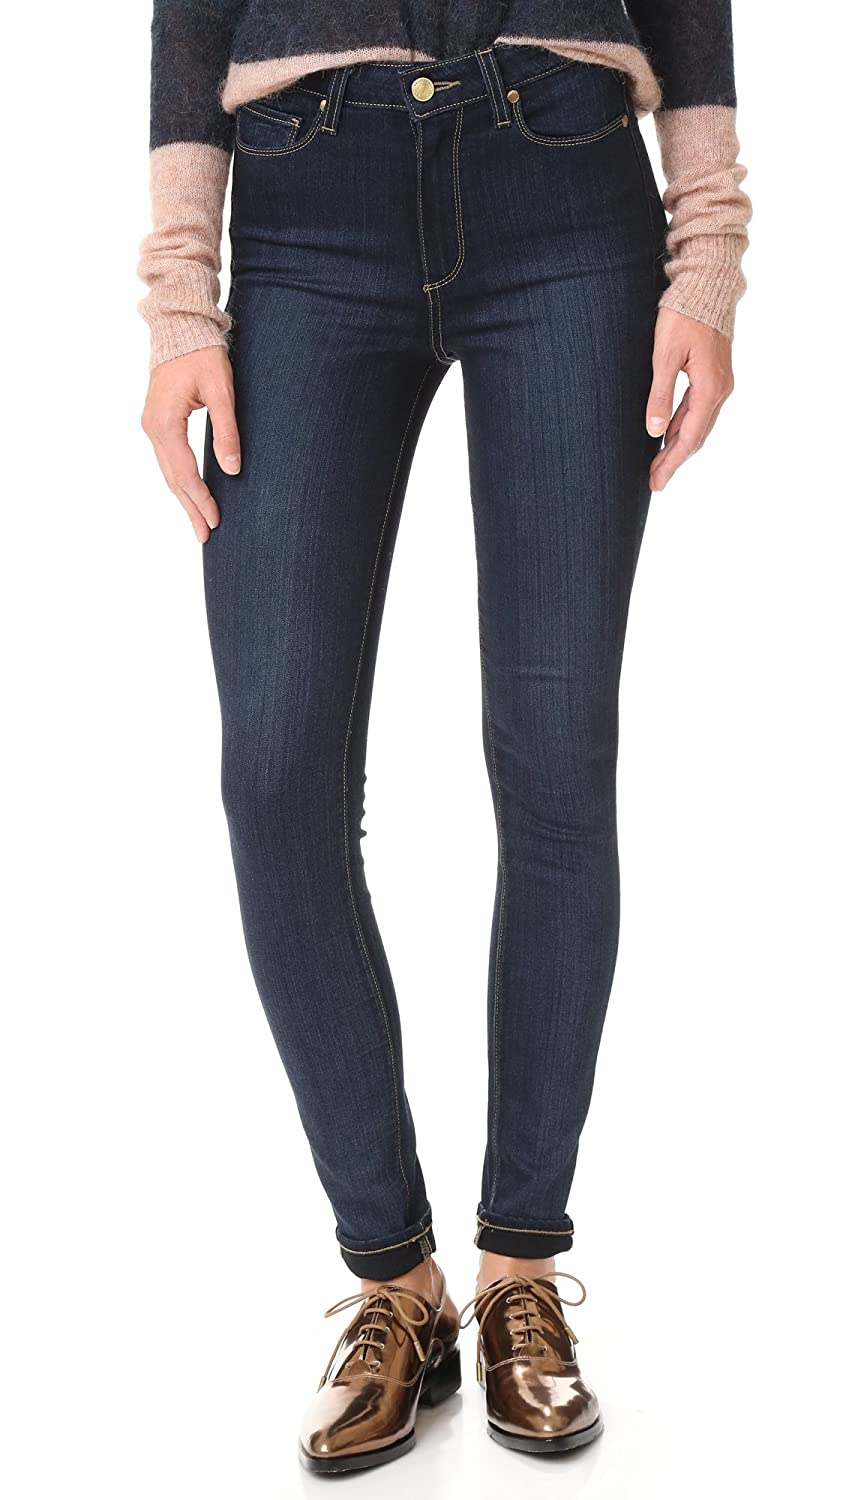 PAIGE Women's Margot Ultra Skinny Jeans, La Rue, 25